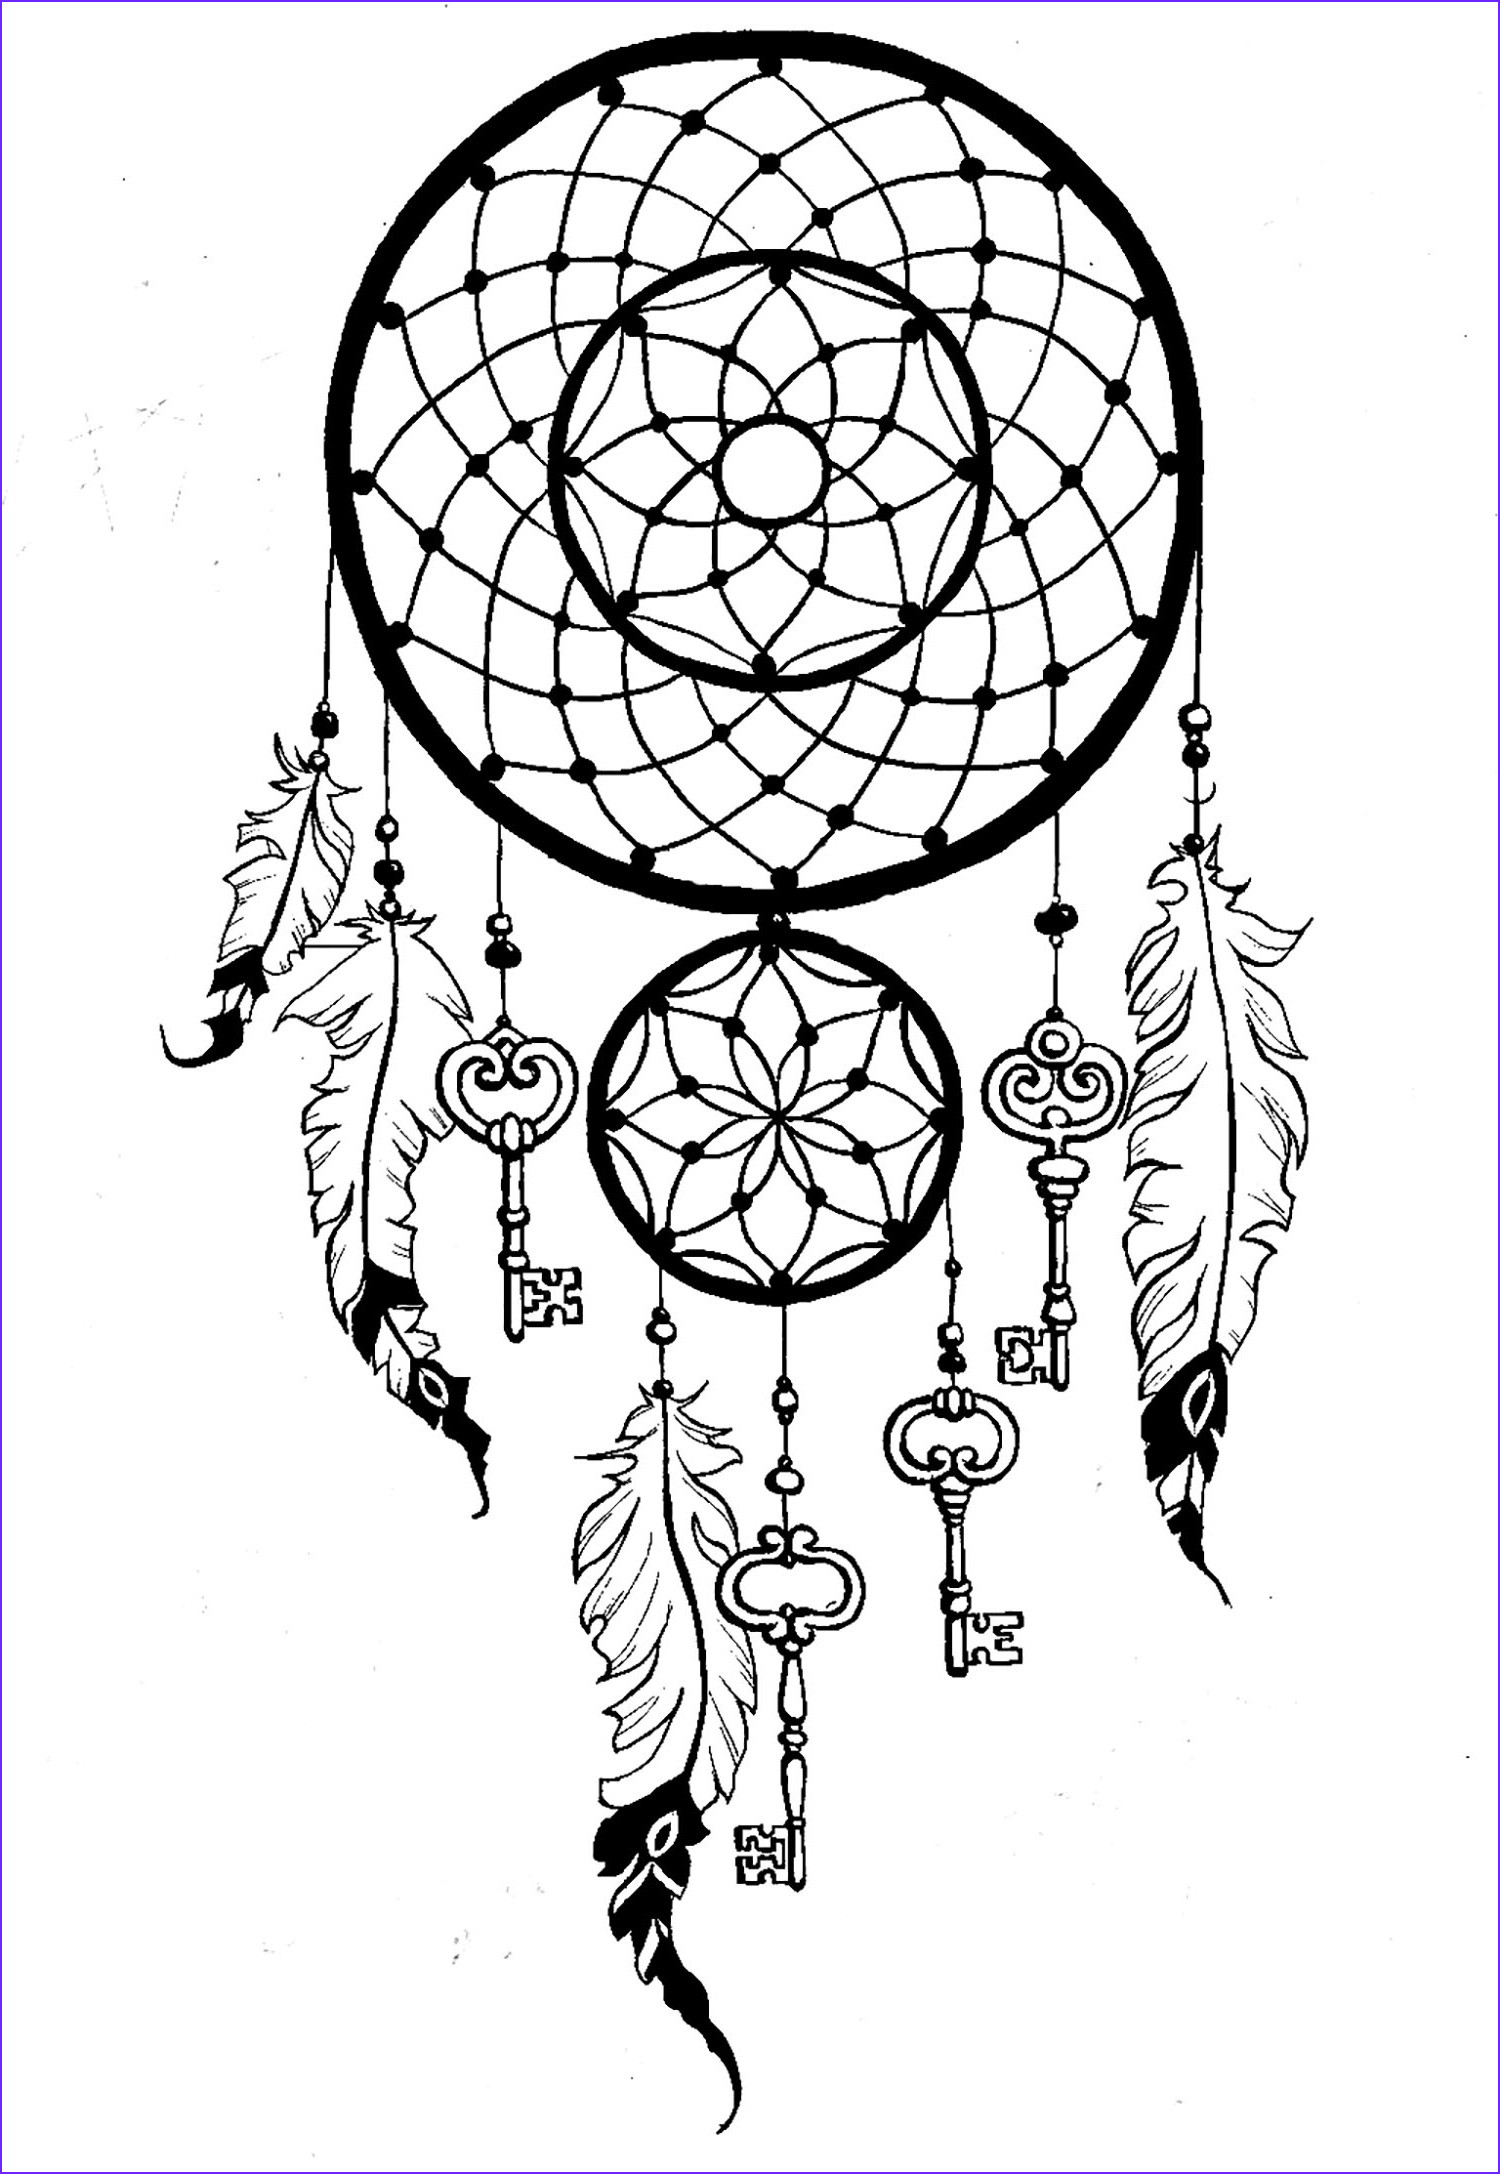 Dream Catcher Coloring Book Beautiful Images Dreamcatcher Keys Dreamcatchers Adult Coloring Pages